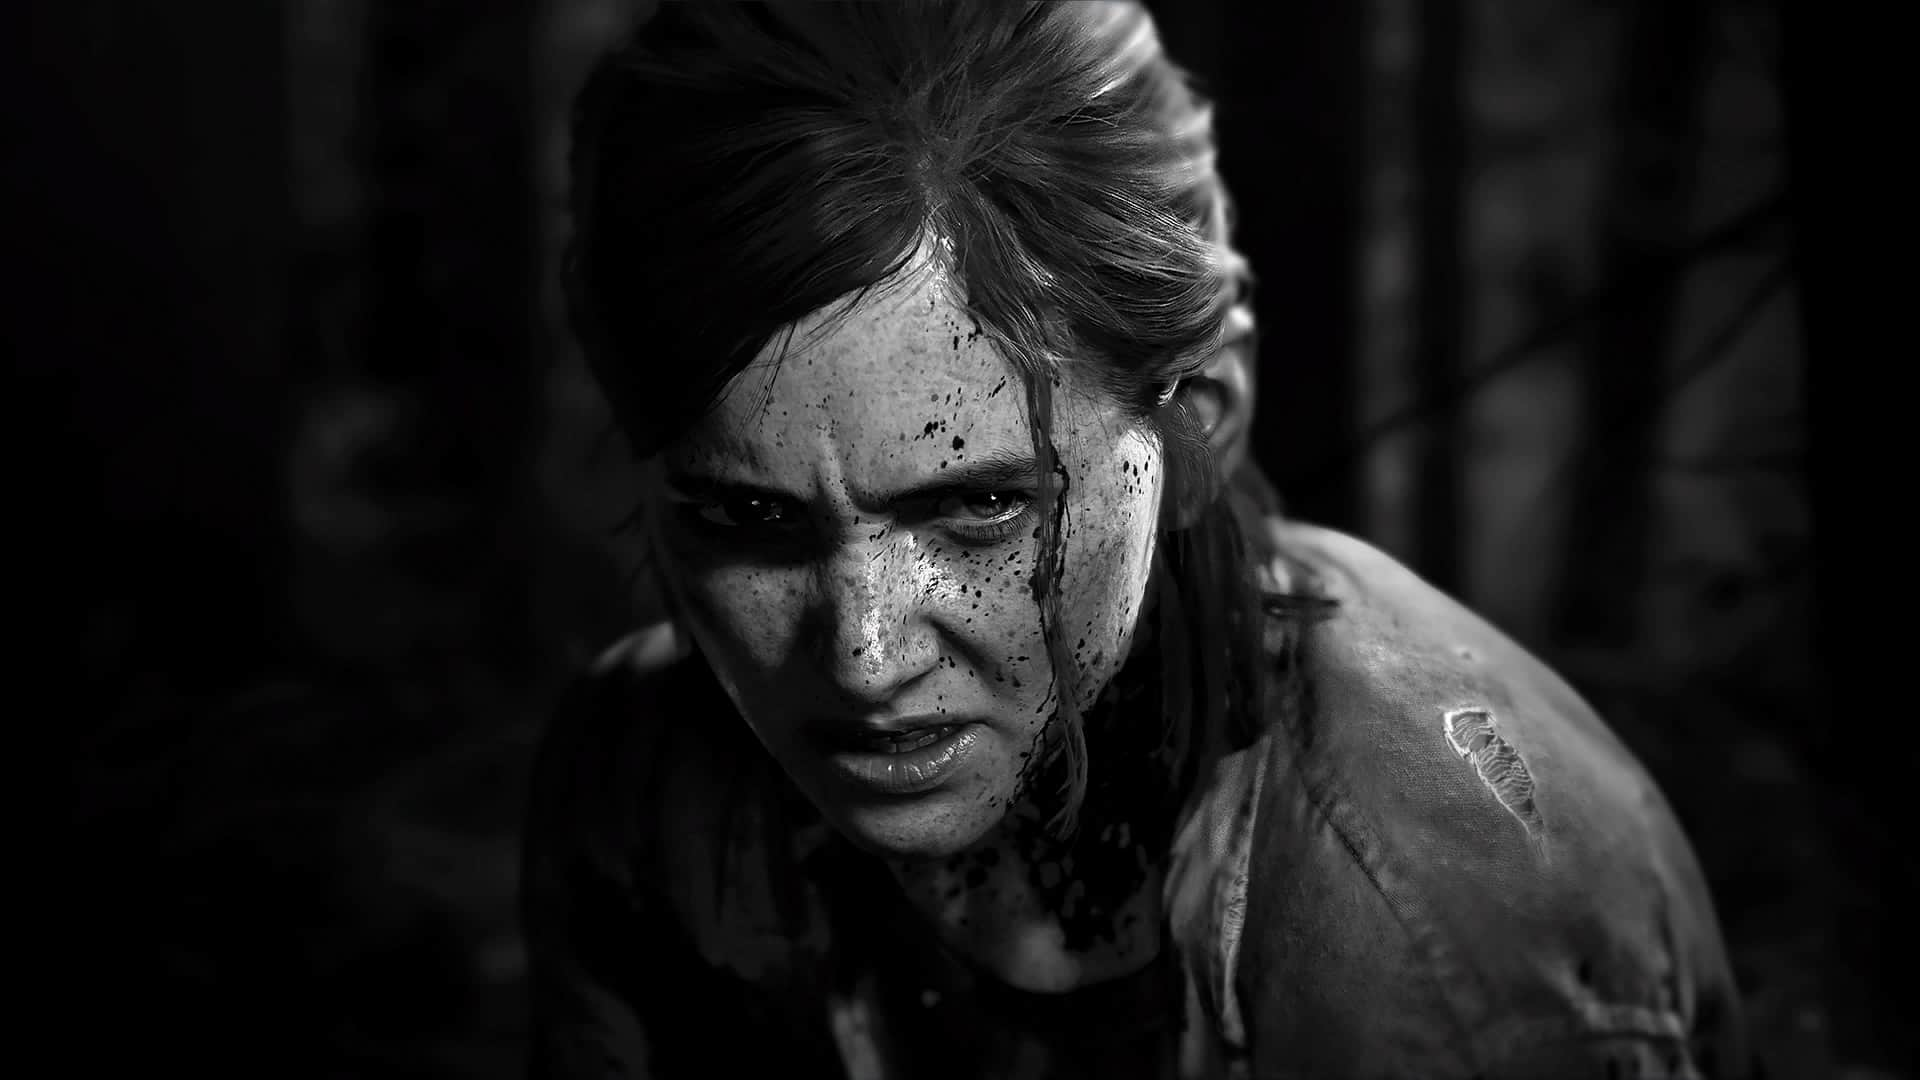 Imatge de la portada de The Last of Us Part II